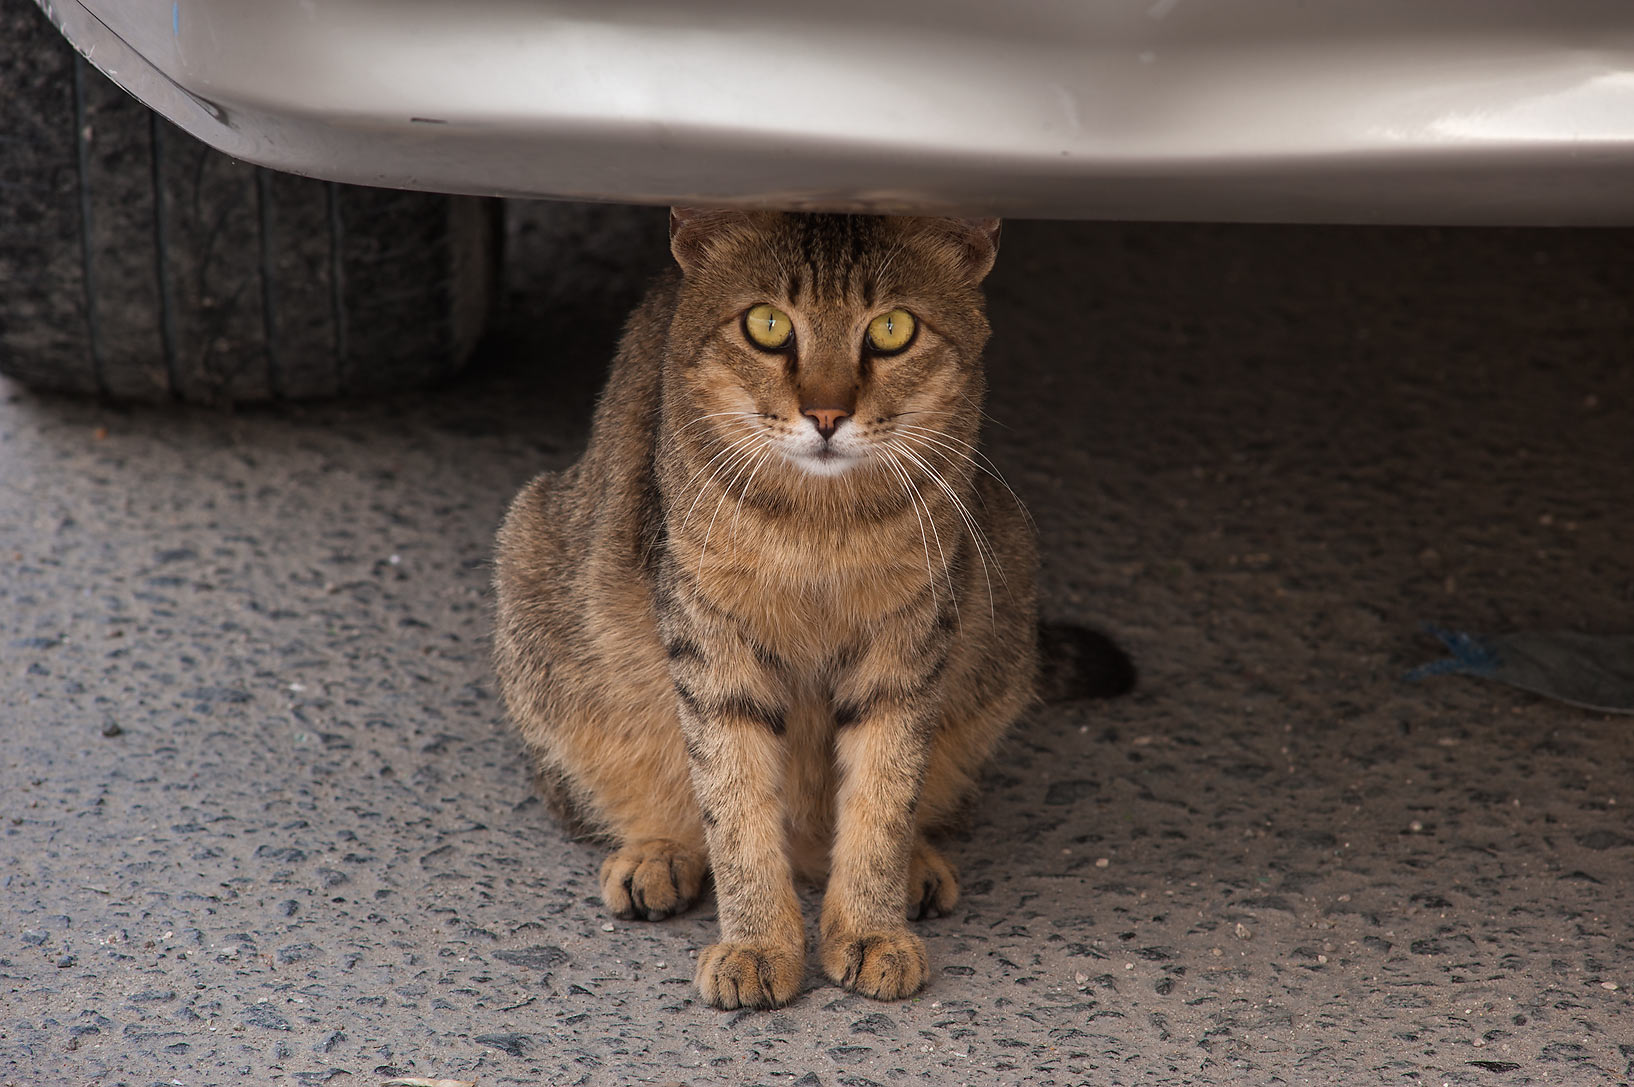 Tabby cat under a car on Umm Wishad St. in Musheirib area. Doha, Qatar